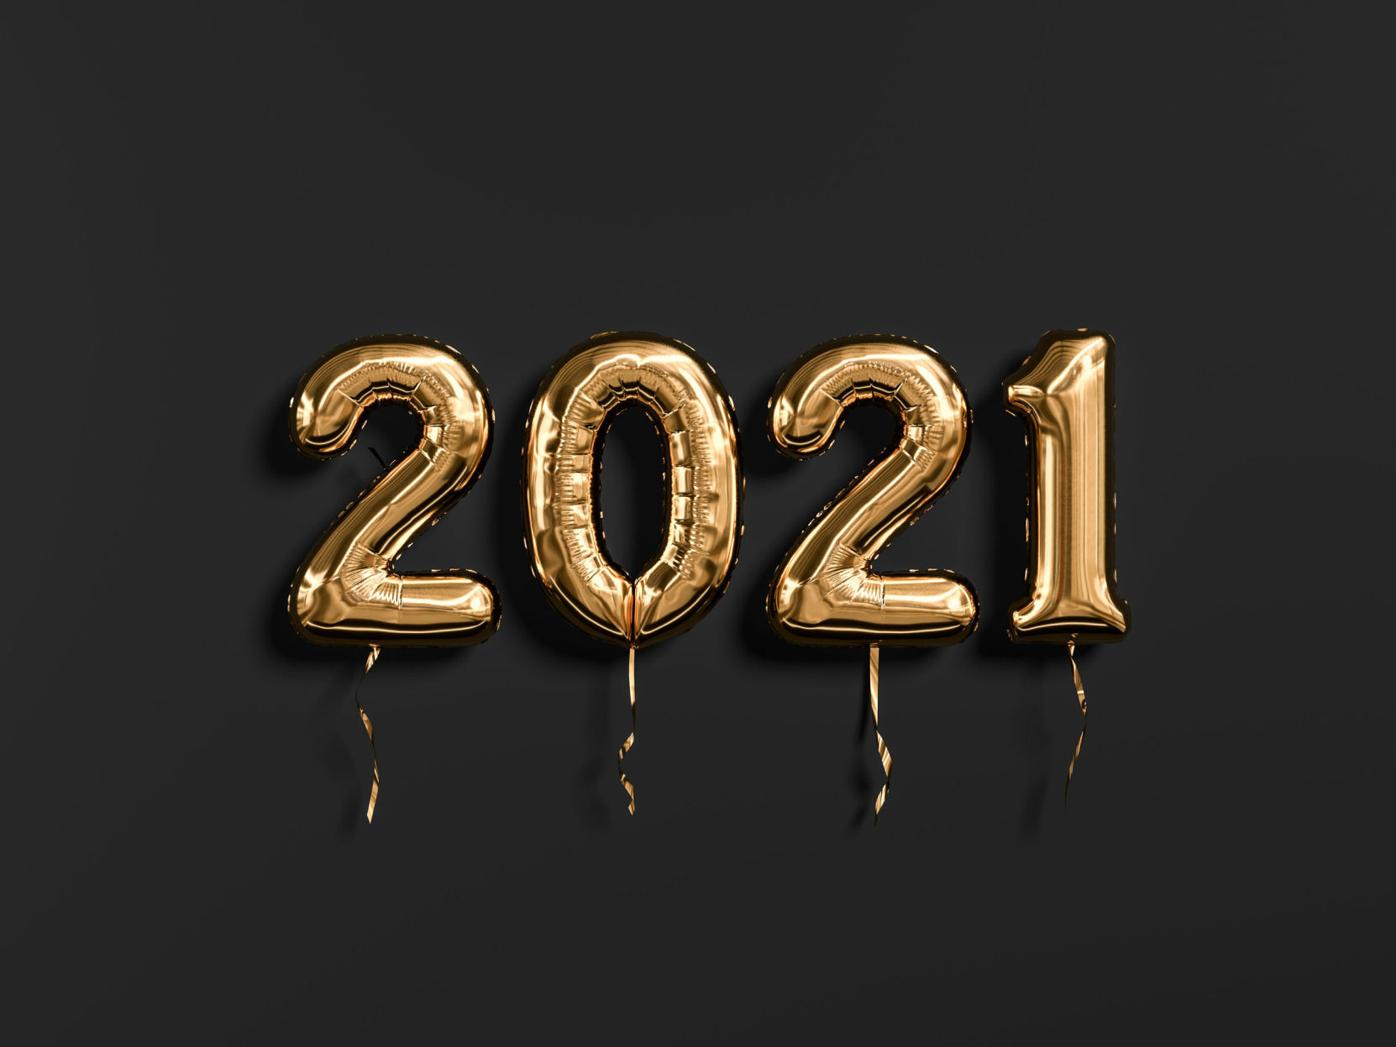 Ring in 2021 at home with activities, treats and more